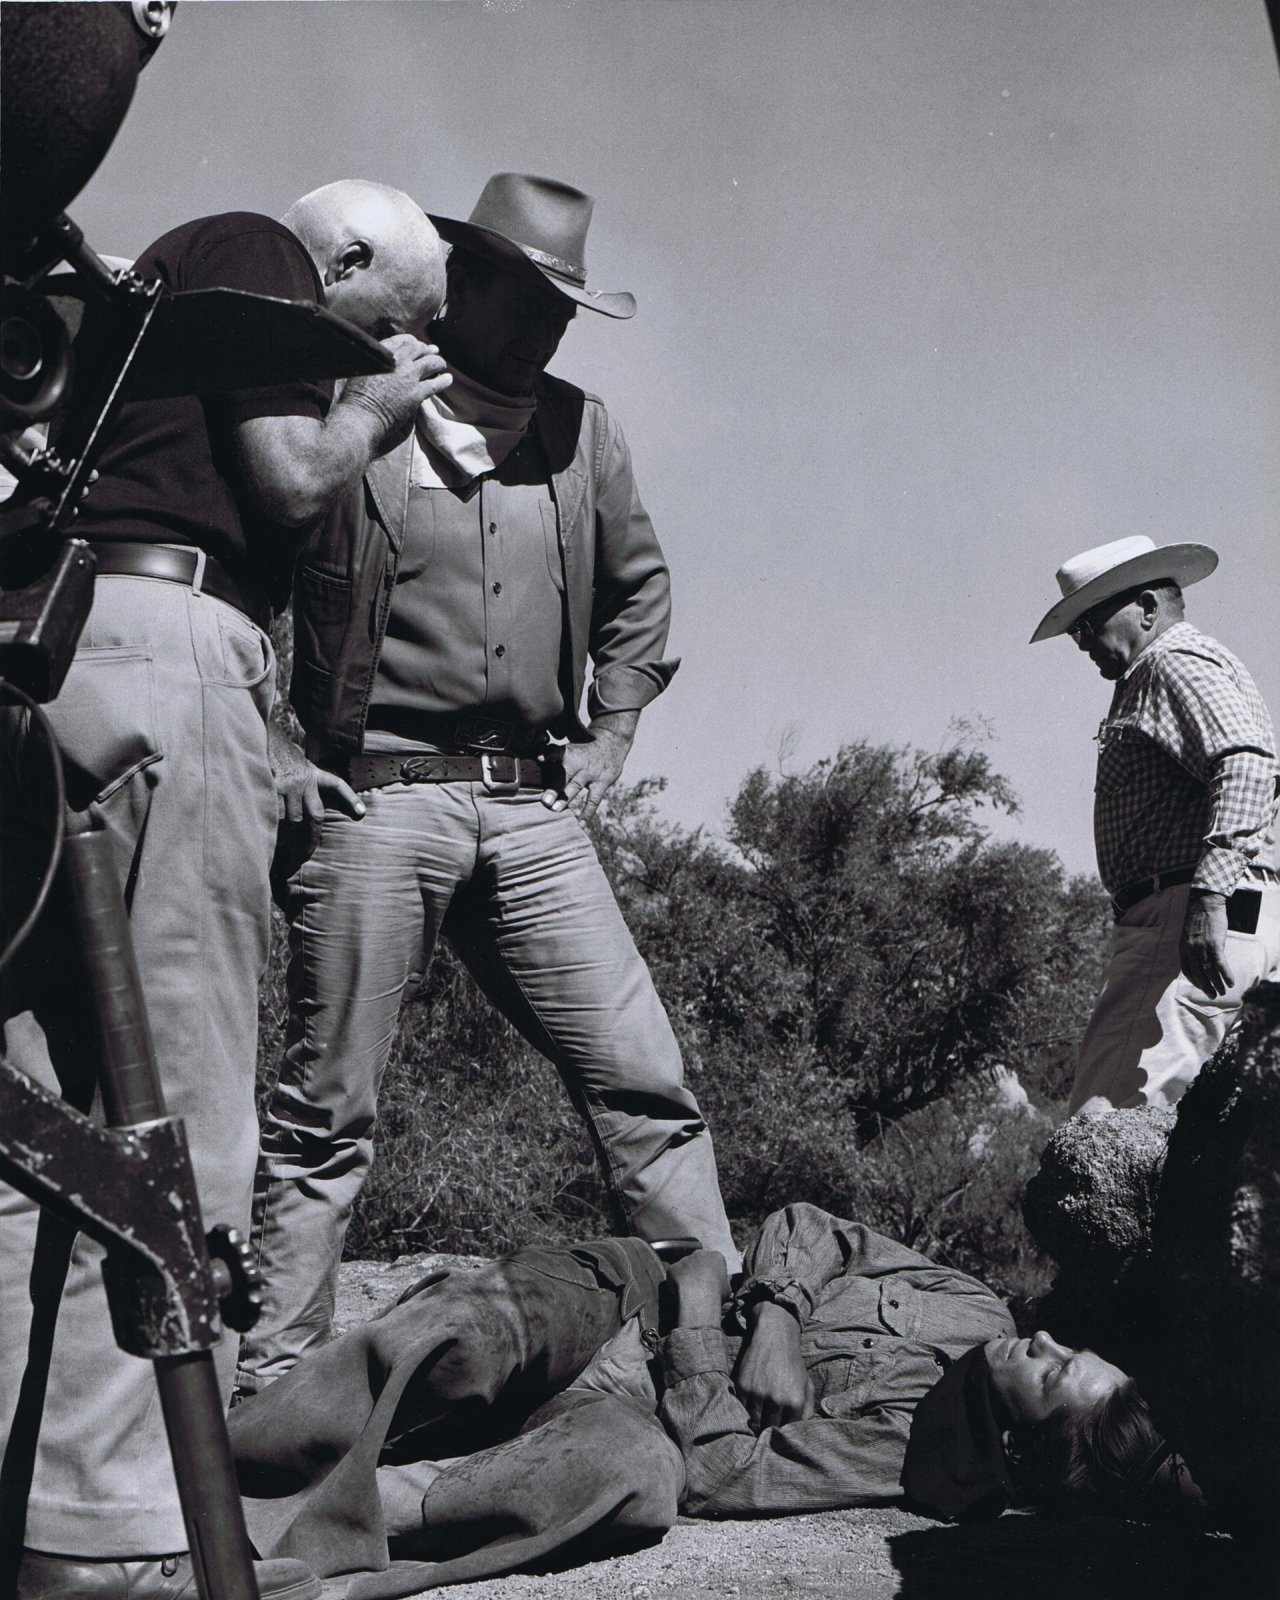 """Howard Hawks w/ an assist from the Duke setting up a shot for 'El Dorado' (1966). pic.twitter.com/Q5H4rgdJdf — James Hancock (@colebrax) August 21, 2015"""